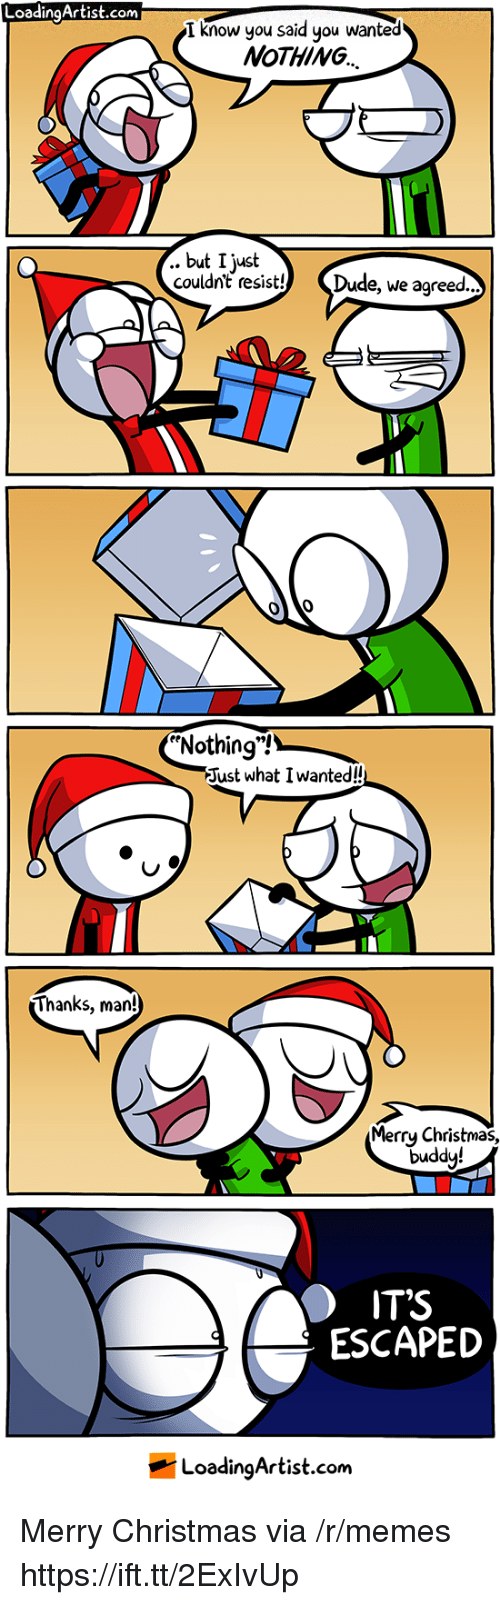 "Christmas, Dude, and Memes: LoadingArtist.com  I know you said you wanted  NoTHING  .. but I just  couldnt resist! Dude, we agreed..  Nothing""!  Just what I wanted!  Thanks, man!  Merrų Christmas,  duddy!  IT'S  ESCAPED  LoadingArtist.com Merry Christmas via /r/memes https://ift.tt/2ExIvUp"